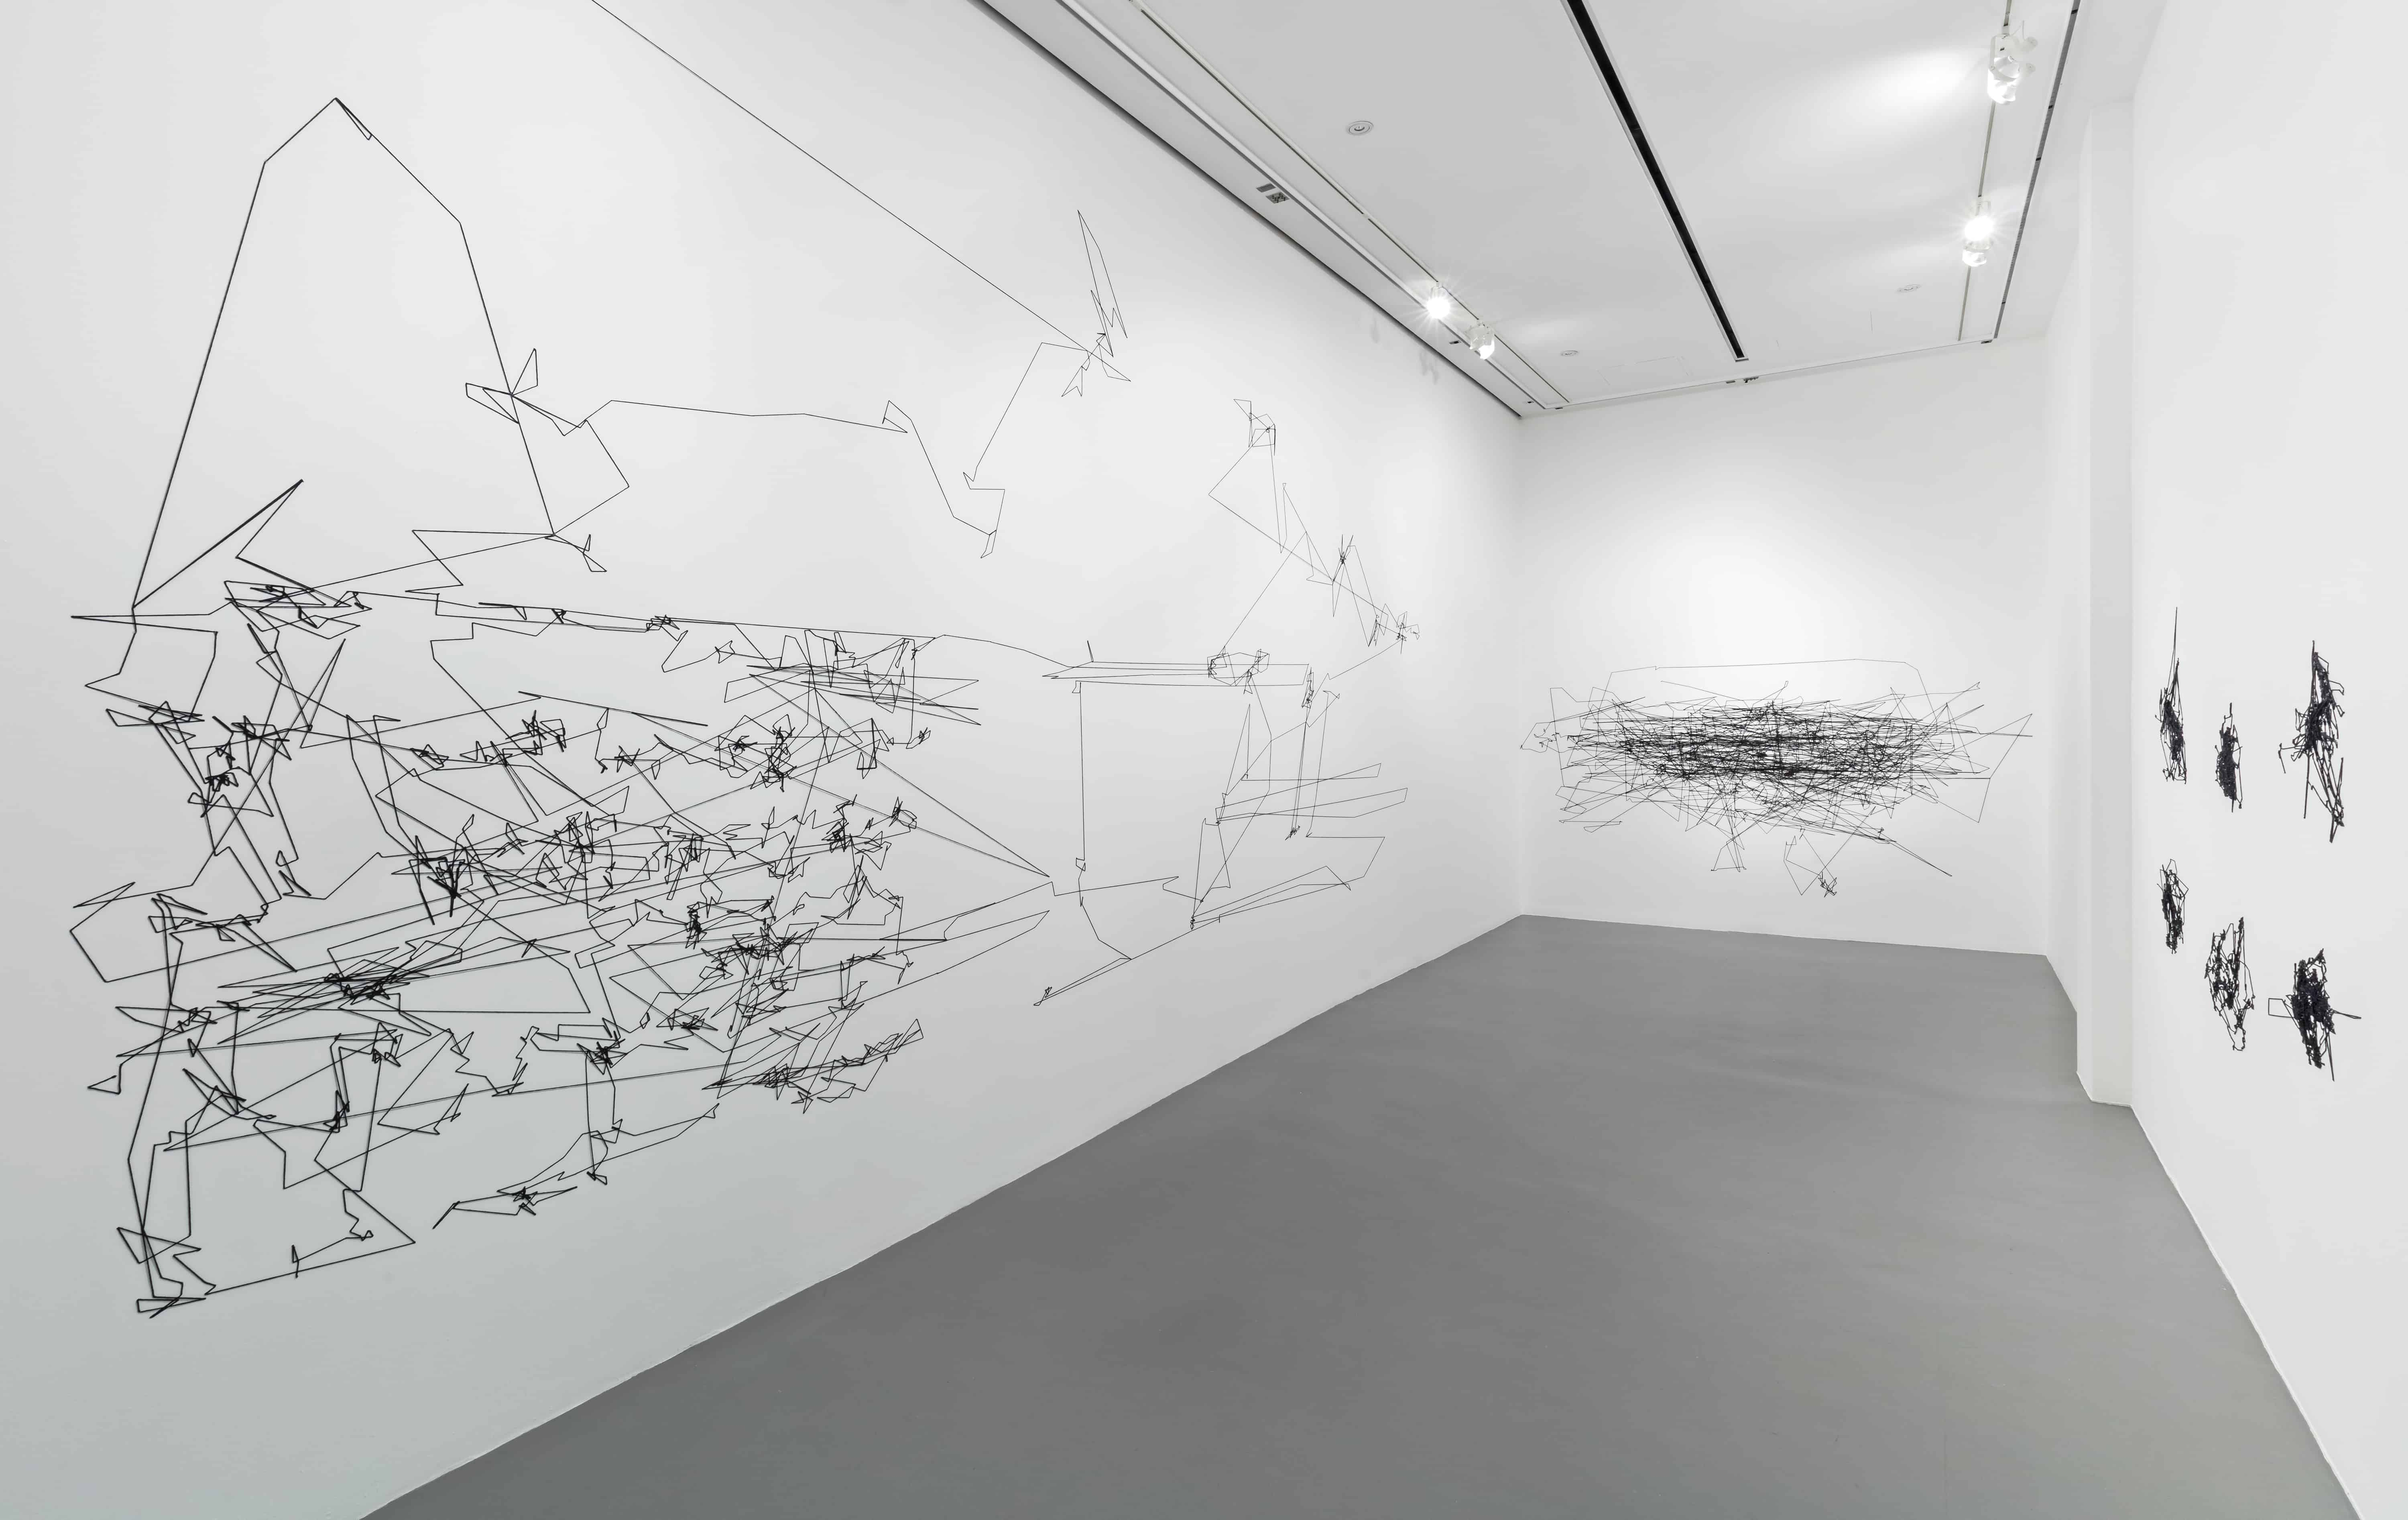 Julien Prévieux, Elements of Influence (Modulation), 2017, Installation view. PHOTO BY TONI HAFKENSCHEID COURTESY OF JULIEN PREVIEUX AND BLACKWOOD GALLERY